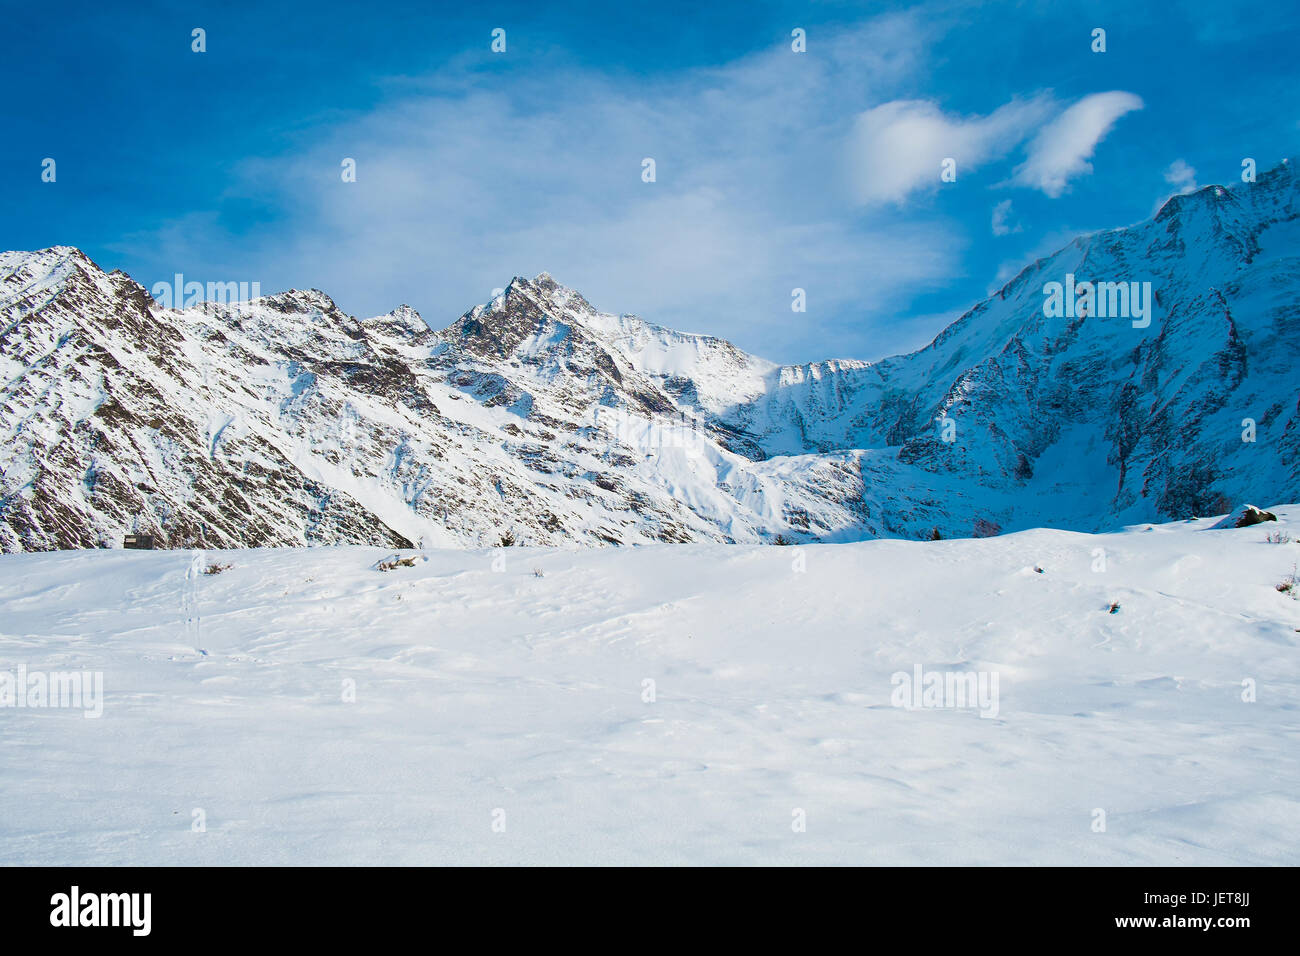 The Mont Blanc of Miage from les chalets de Truc, Les Contamines, Chamonix, France - Stock Image